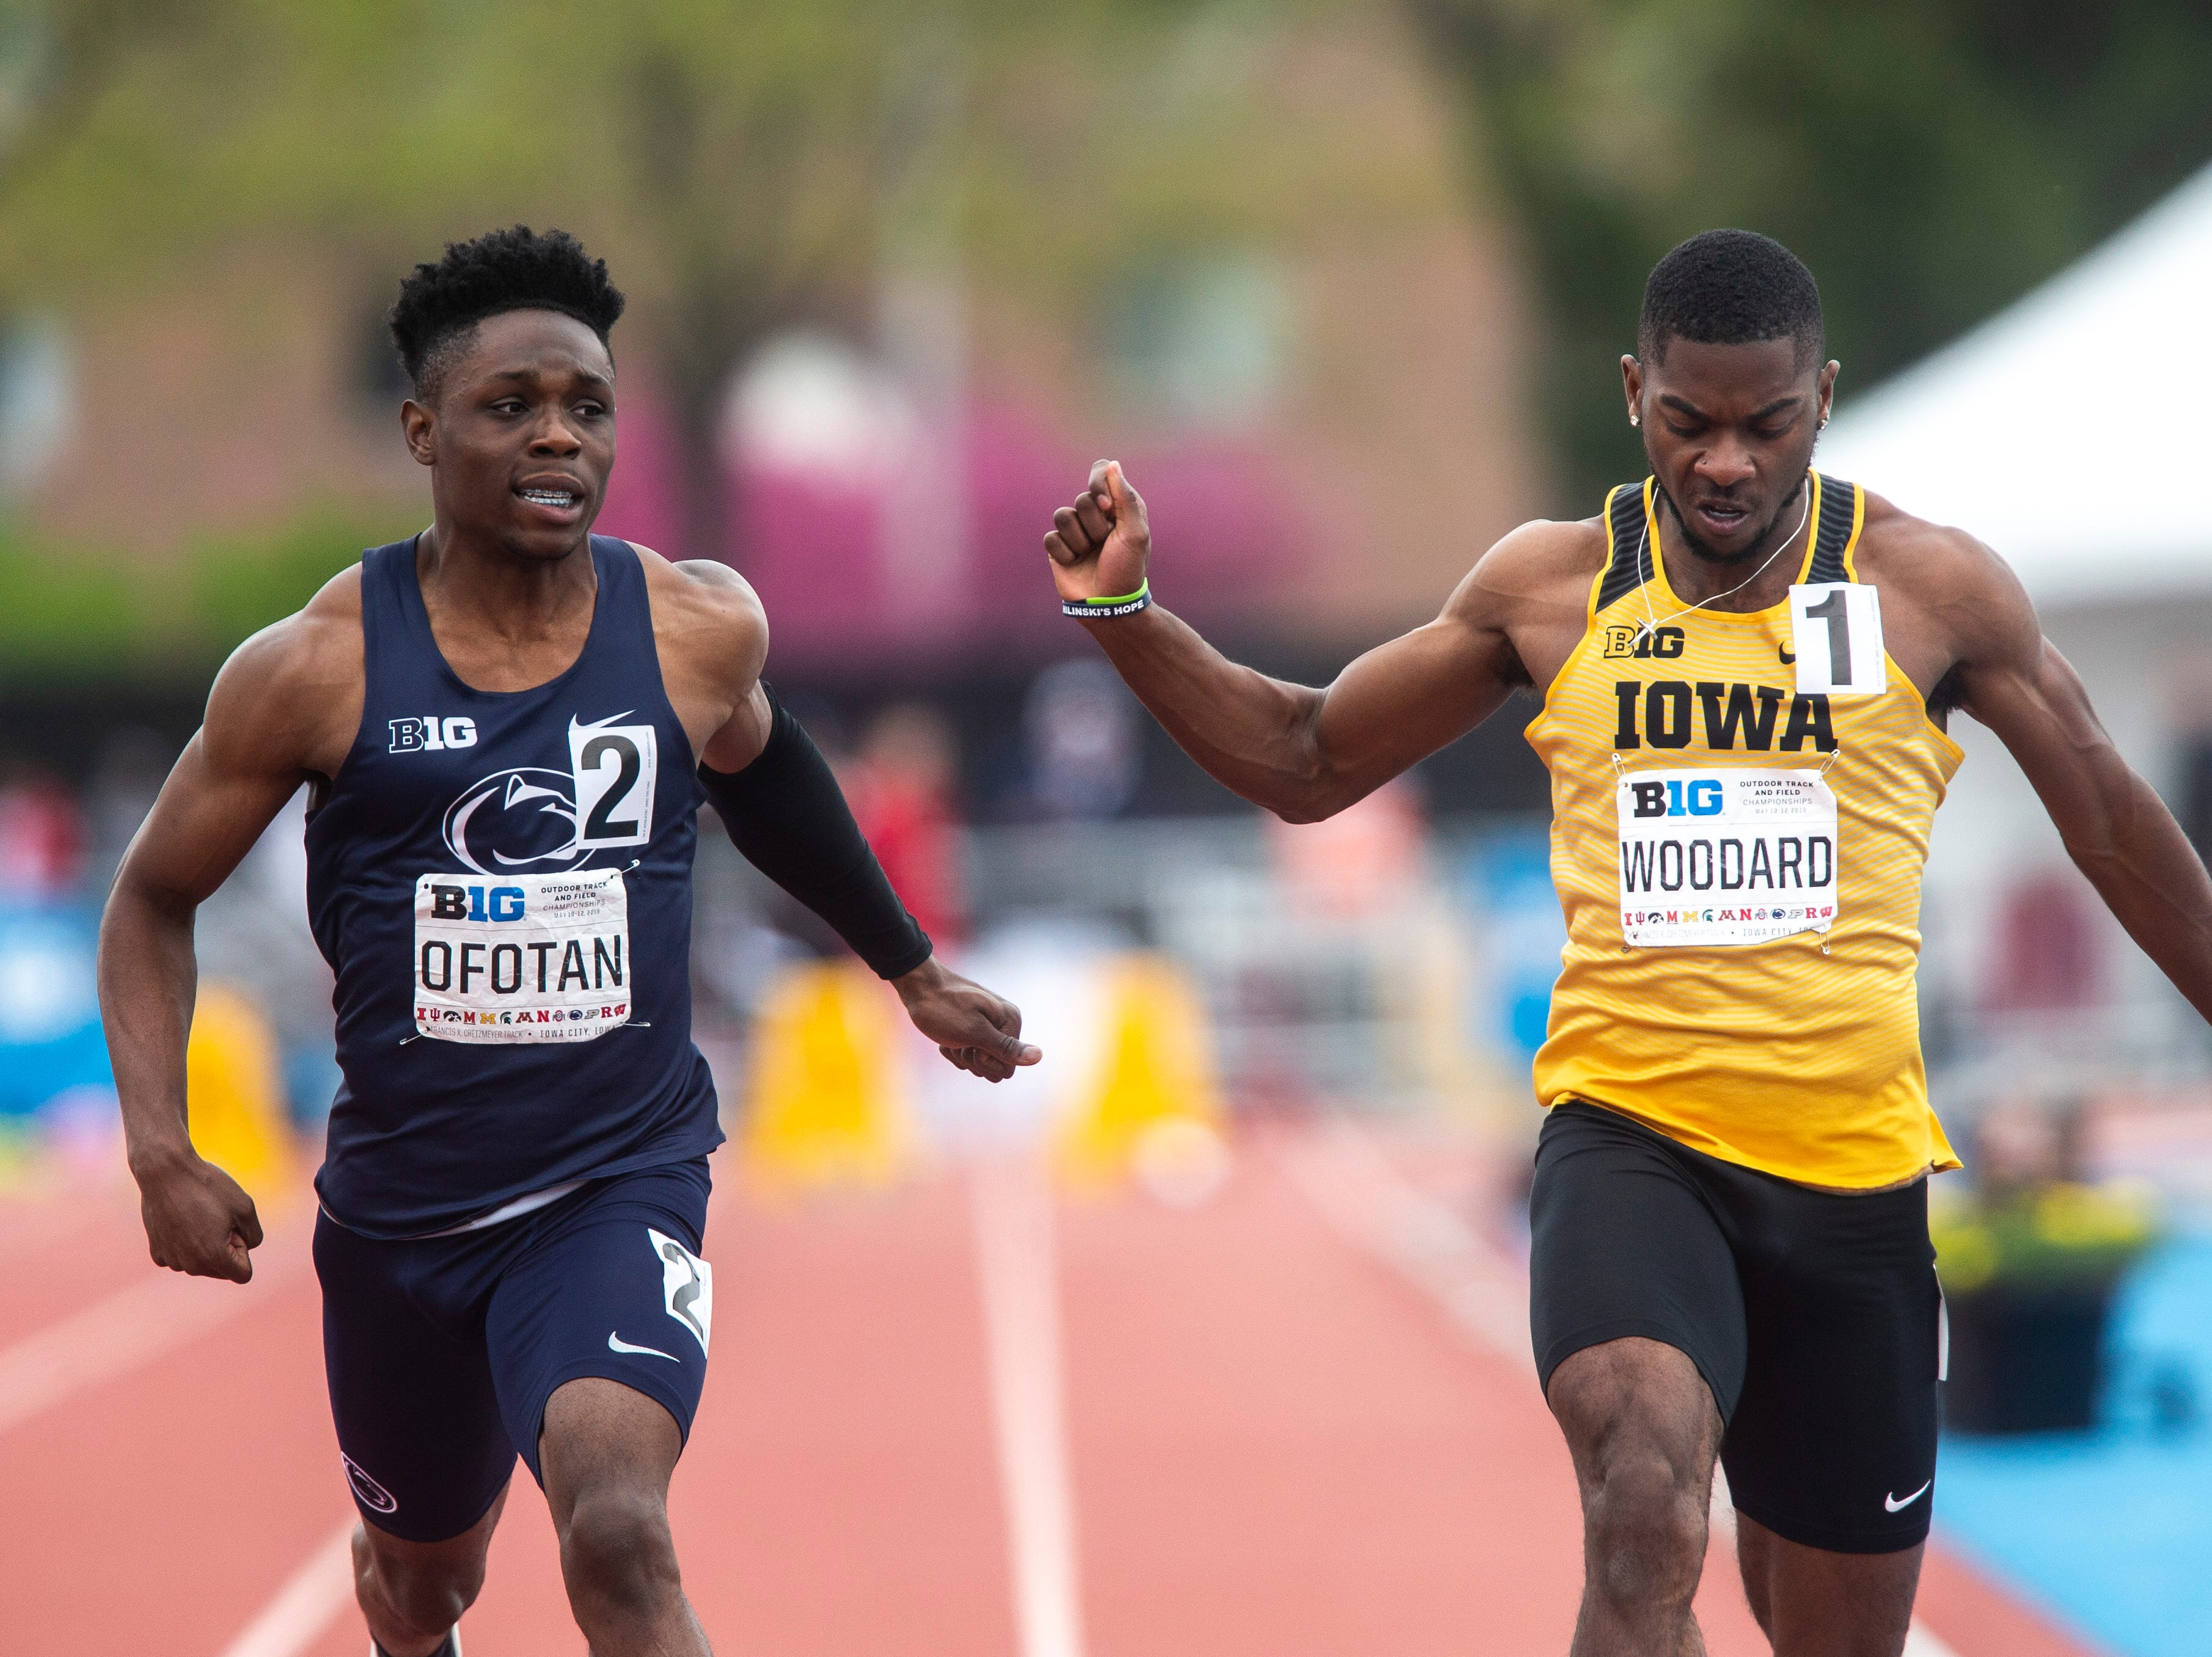 Iowa junior Antonio Woodard, right, crosses the finish line behind Penn State freshman Justin Ofotan during the final day of Big Ten track and field outdoor championships, Sunday, May 12, 2019, at Francis X. Cretzmeyer Track on the University of Iowa campus in Iowa City, Iowa. Woodward finished seventh, with a time of 10.40. Ofotan finished fifth, with a time of 10.39.